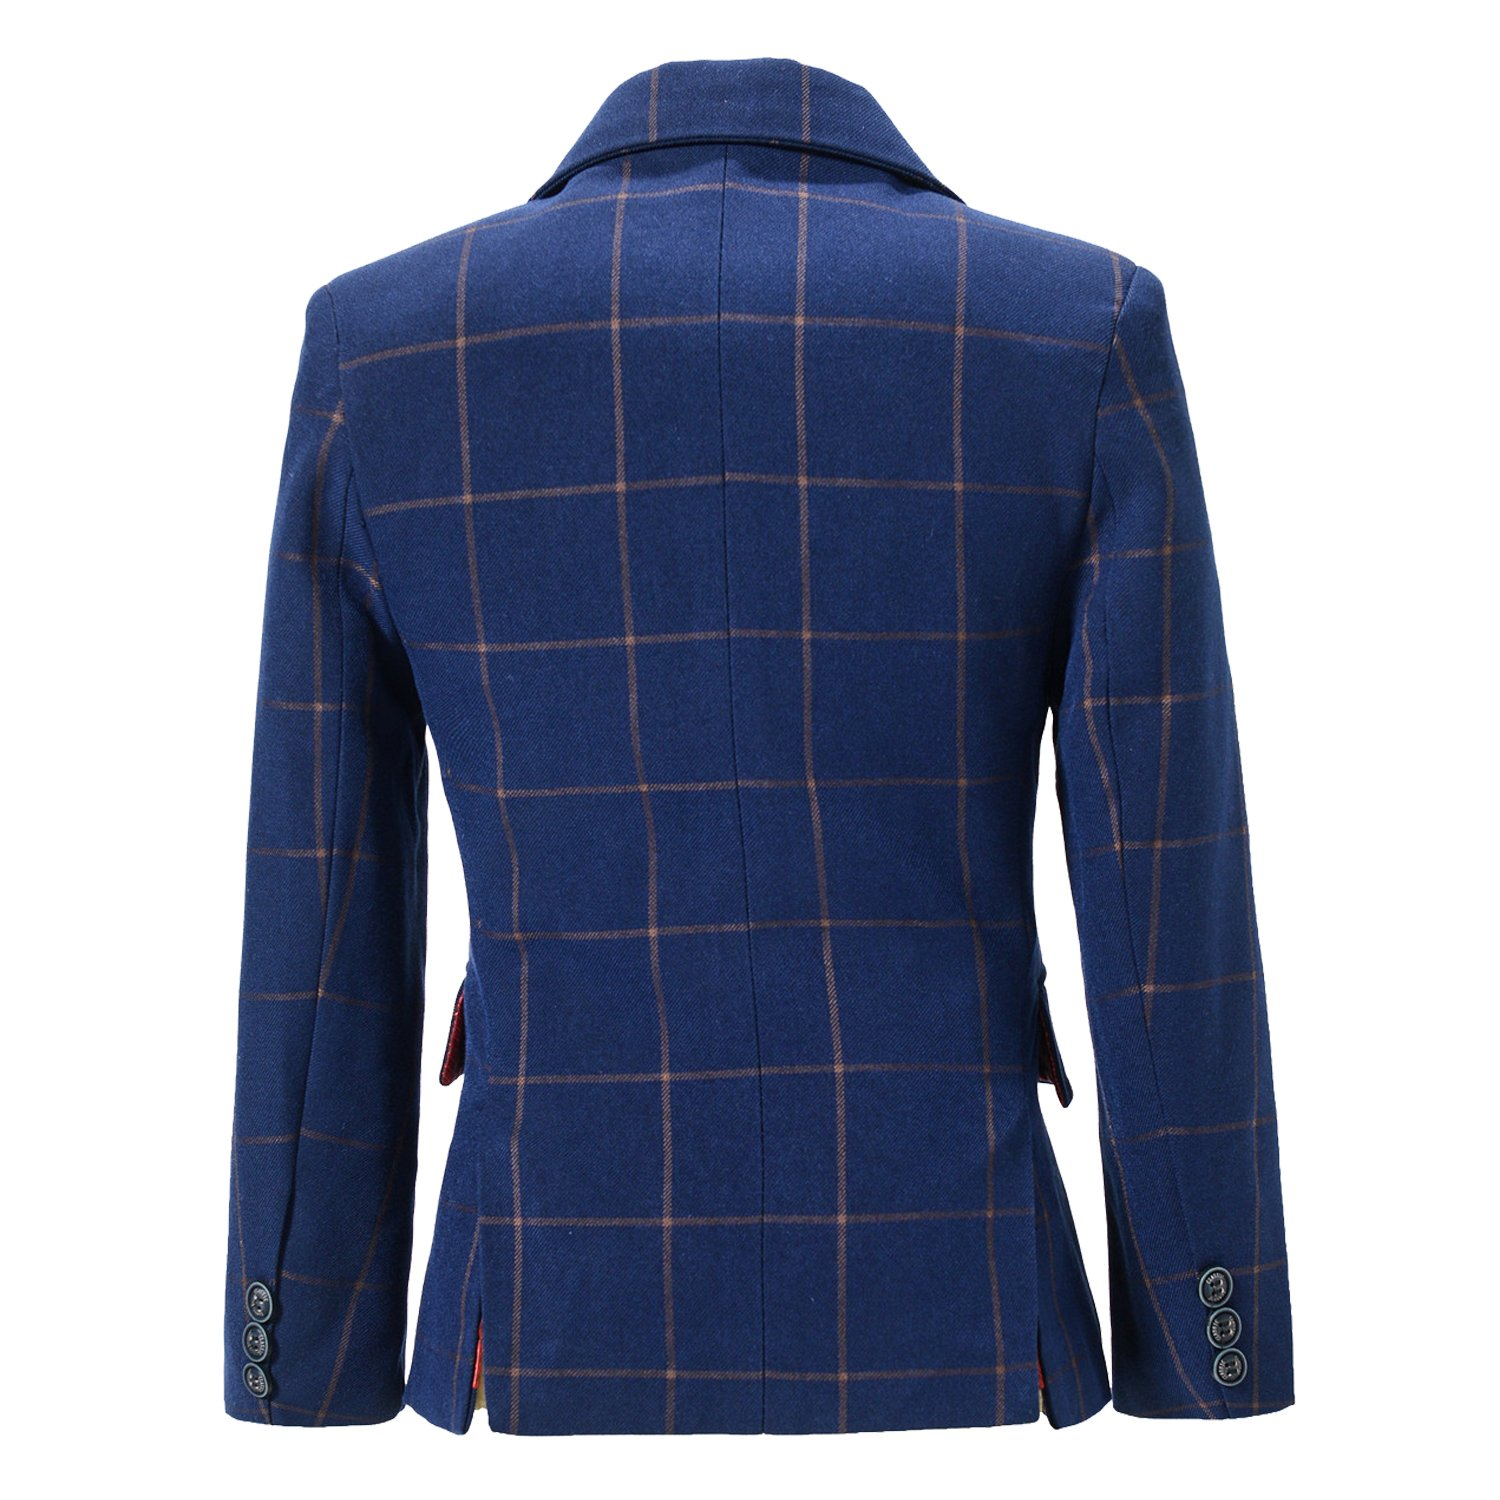 YuanLu Boys Plaid Tuxedo Suits Kids Outfit Jacket For Weddings Size 12 Navy Blue by YuanLu (Image #2)